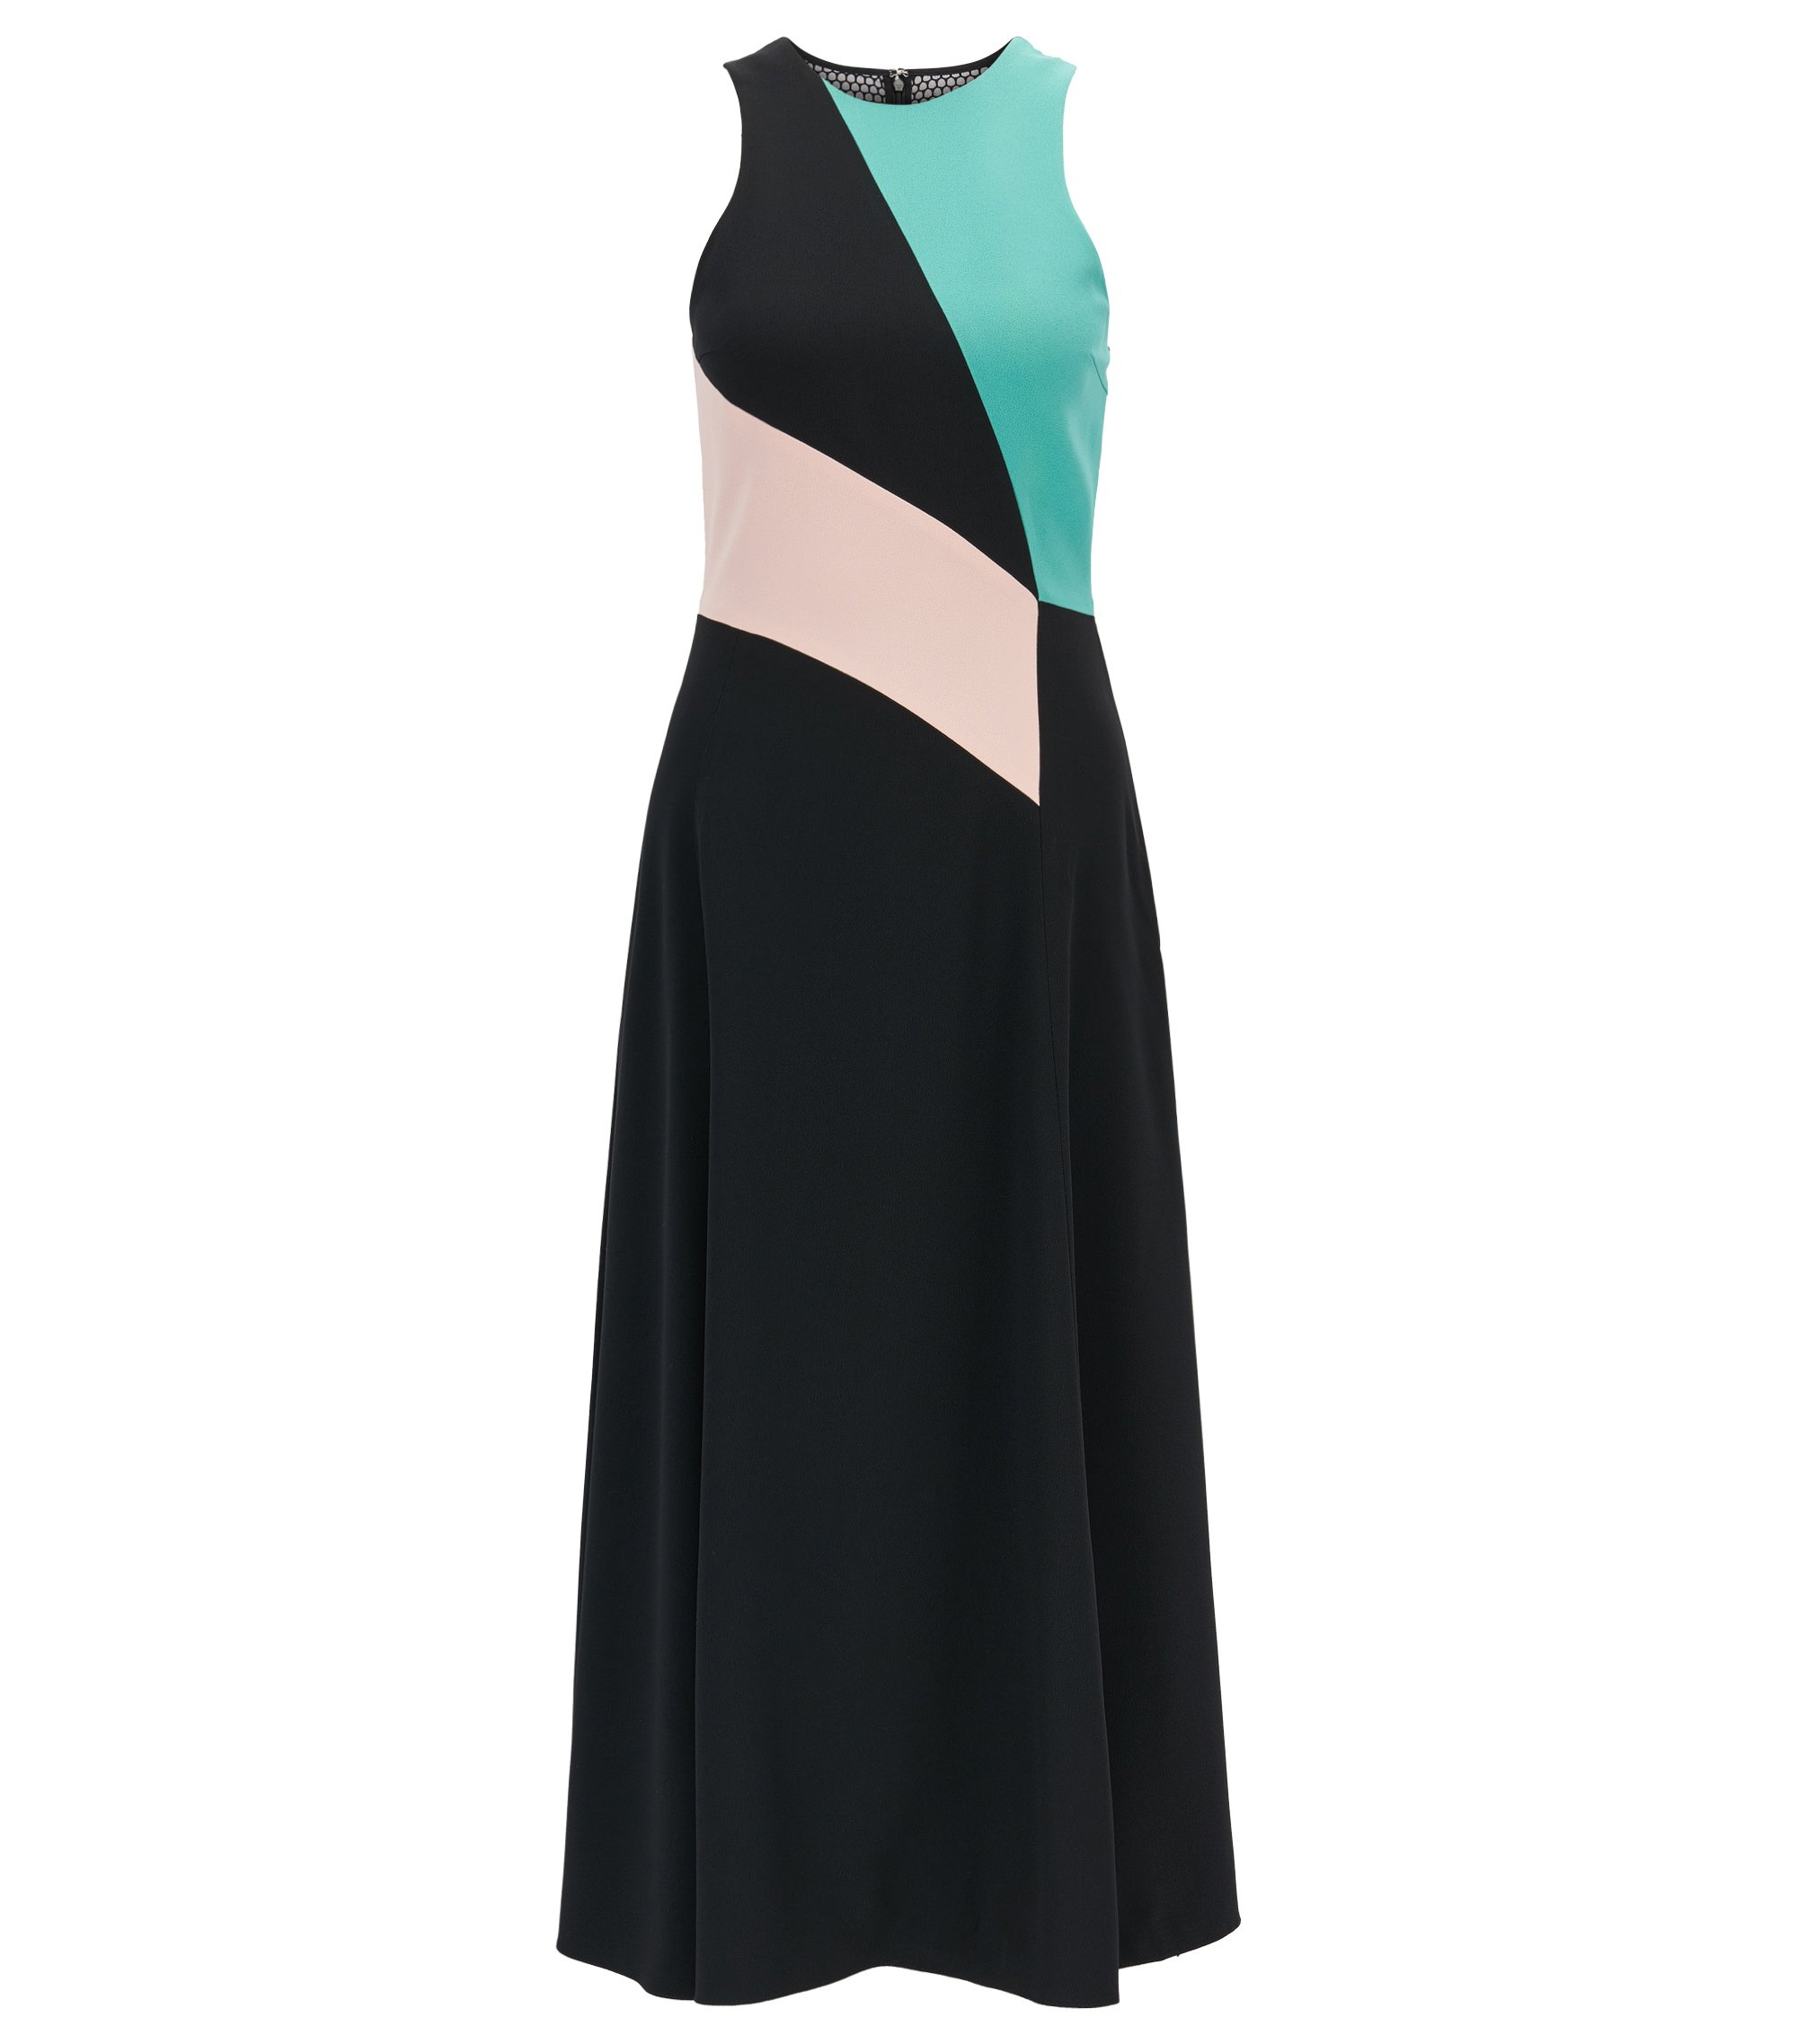 Robe color block Collection Gallery en crêpe envers satin, Fantaisie